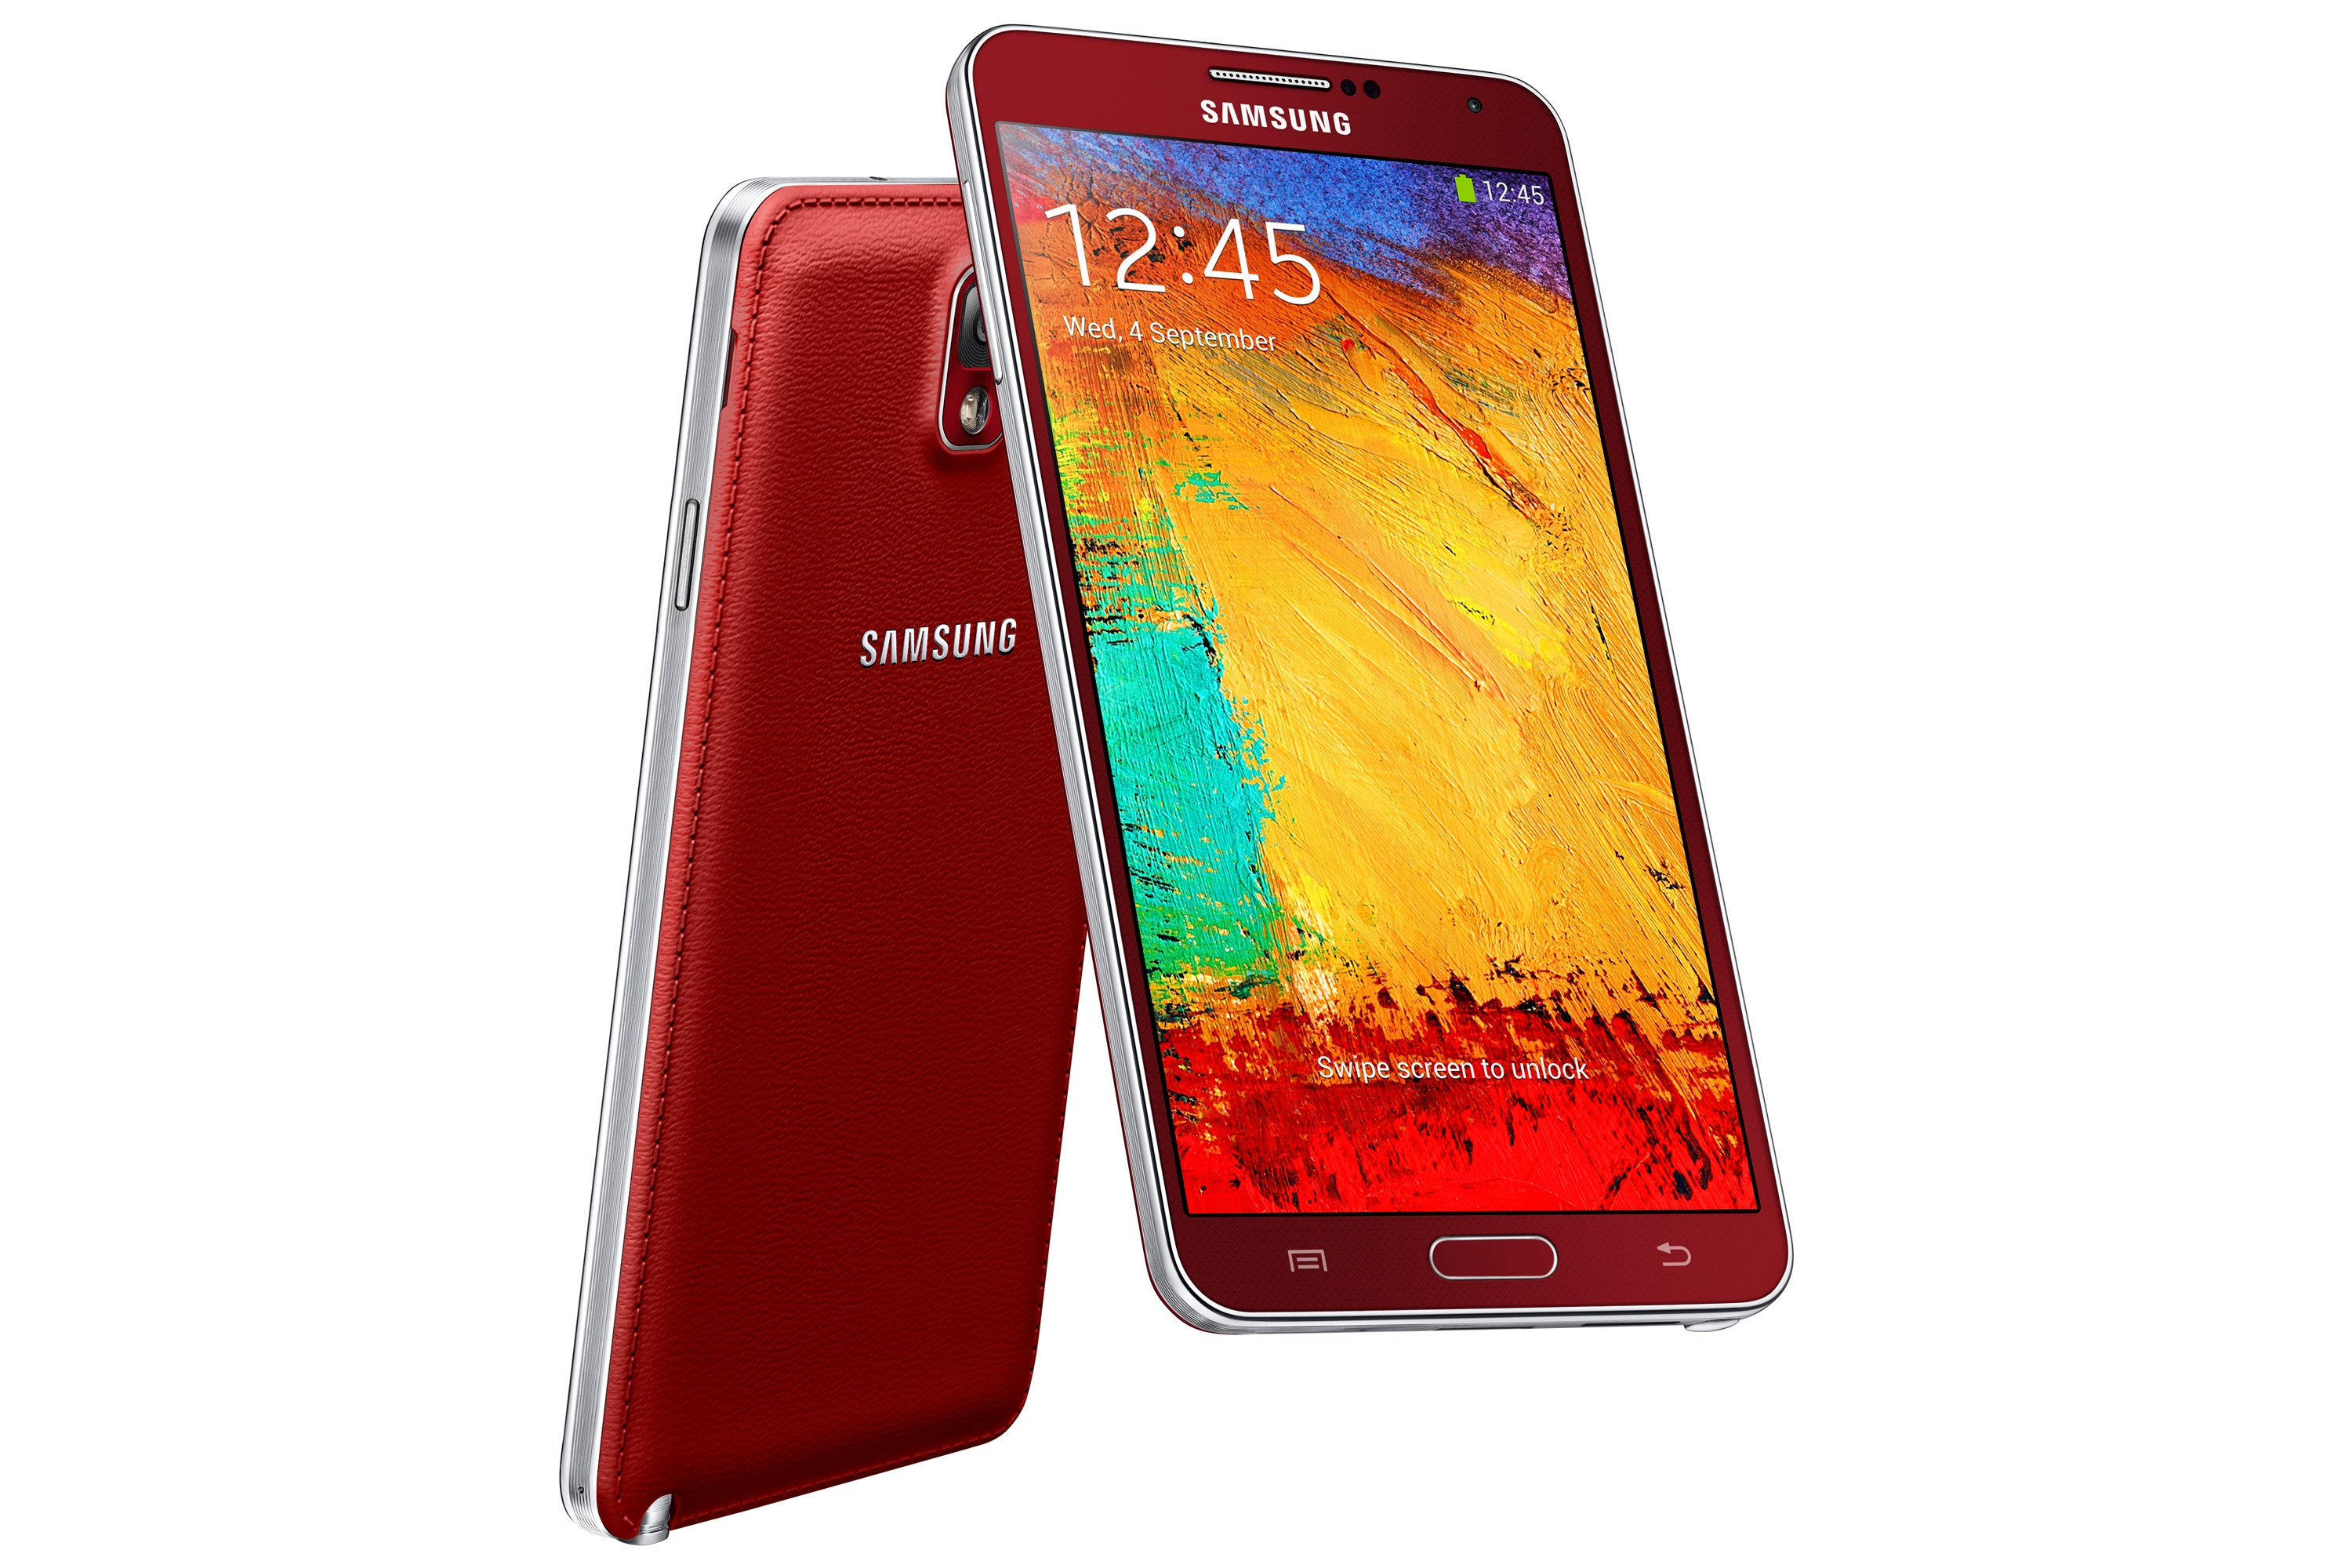 Samsung Galaxy Note 3 Red Rose Gold White N9005